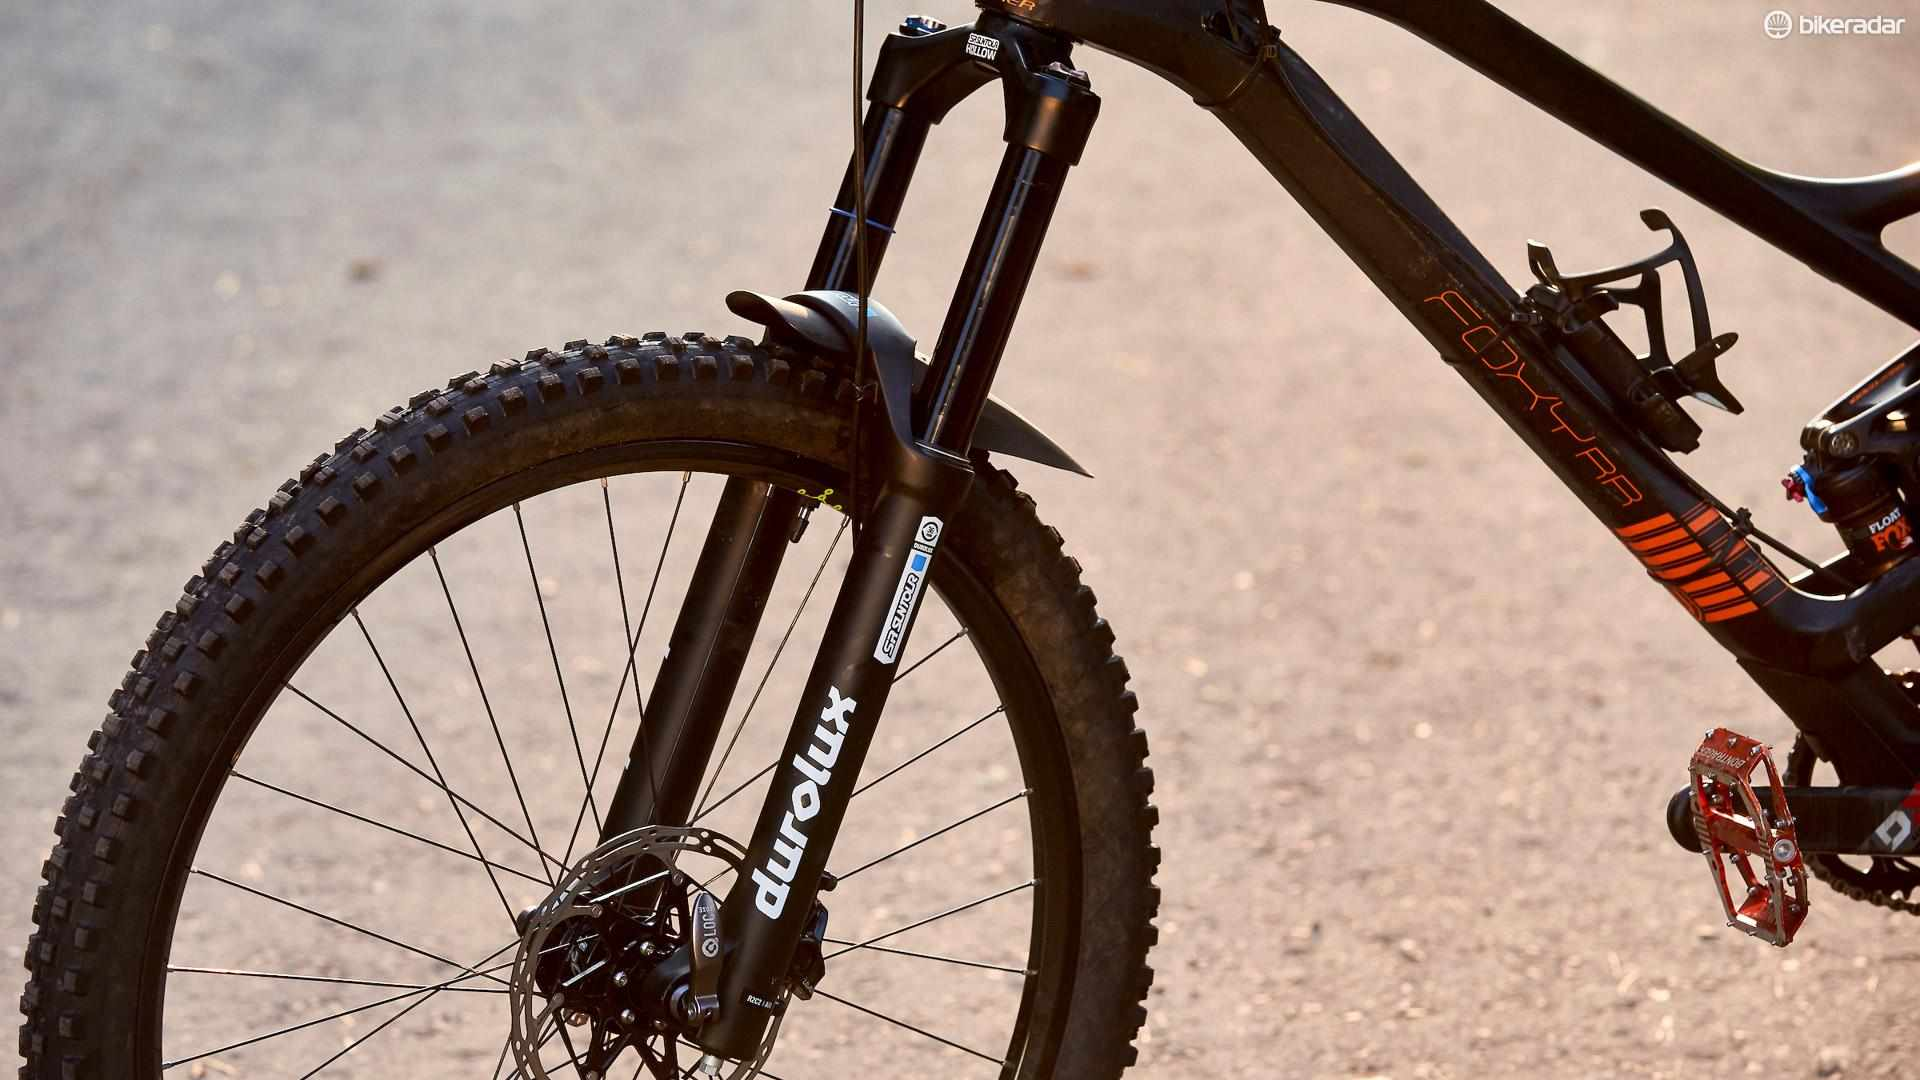 The SR Suntour Durolux R2C2 offers impressive performance for the money